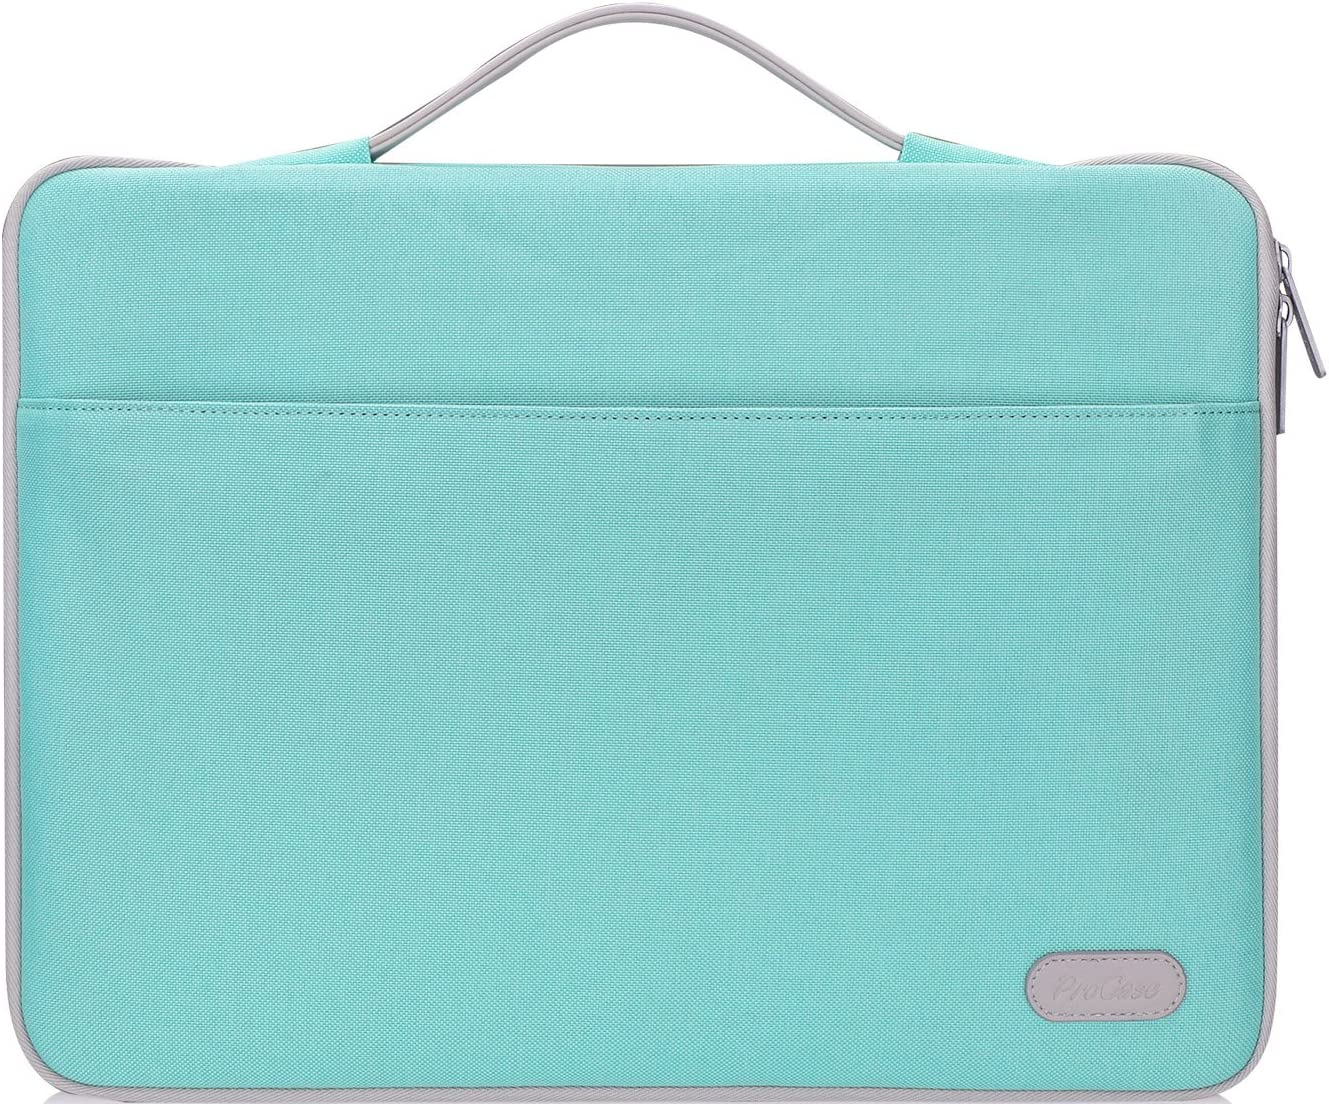 "ProCase 13-13.5 Inch Sleeve Case Cover for MacBook Pro 2019 2018 2017 2016/Surface Laptop 2017/Book 3 13.5"" 15"", Laptop Slim Bag for 13"" 13.3"" Lenovo Dell Toshiba HP ASUS Acer Chromebook -Mint Green"